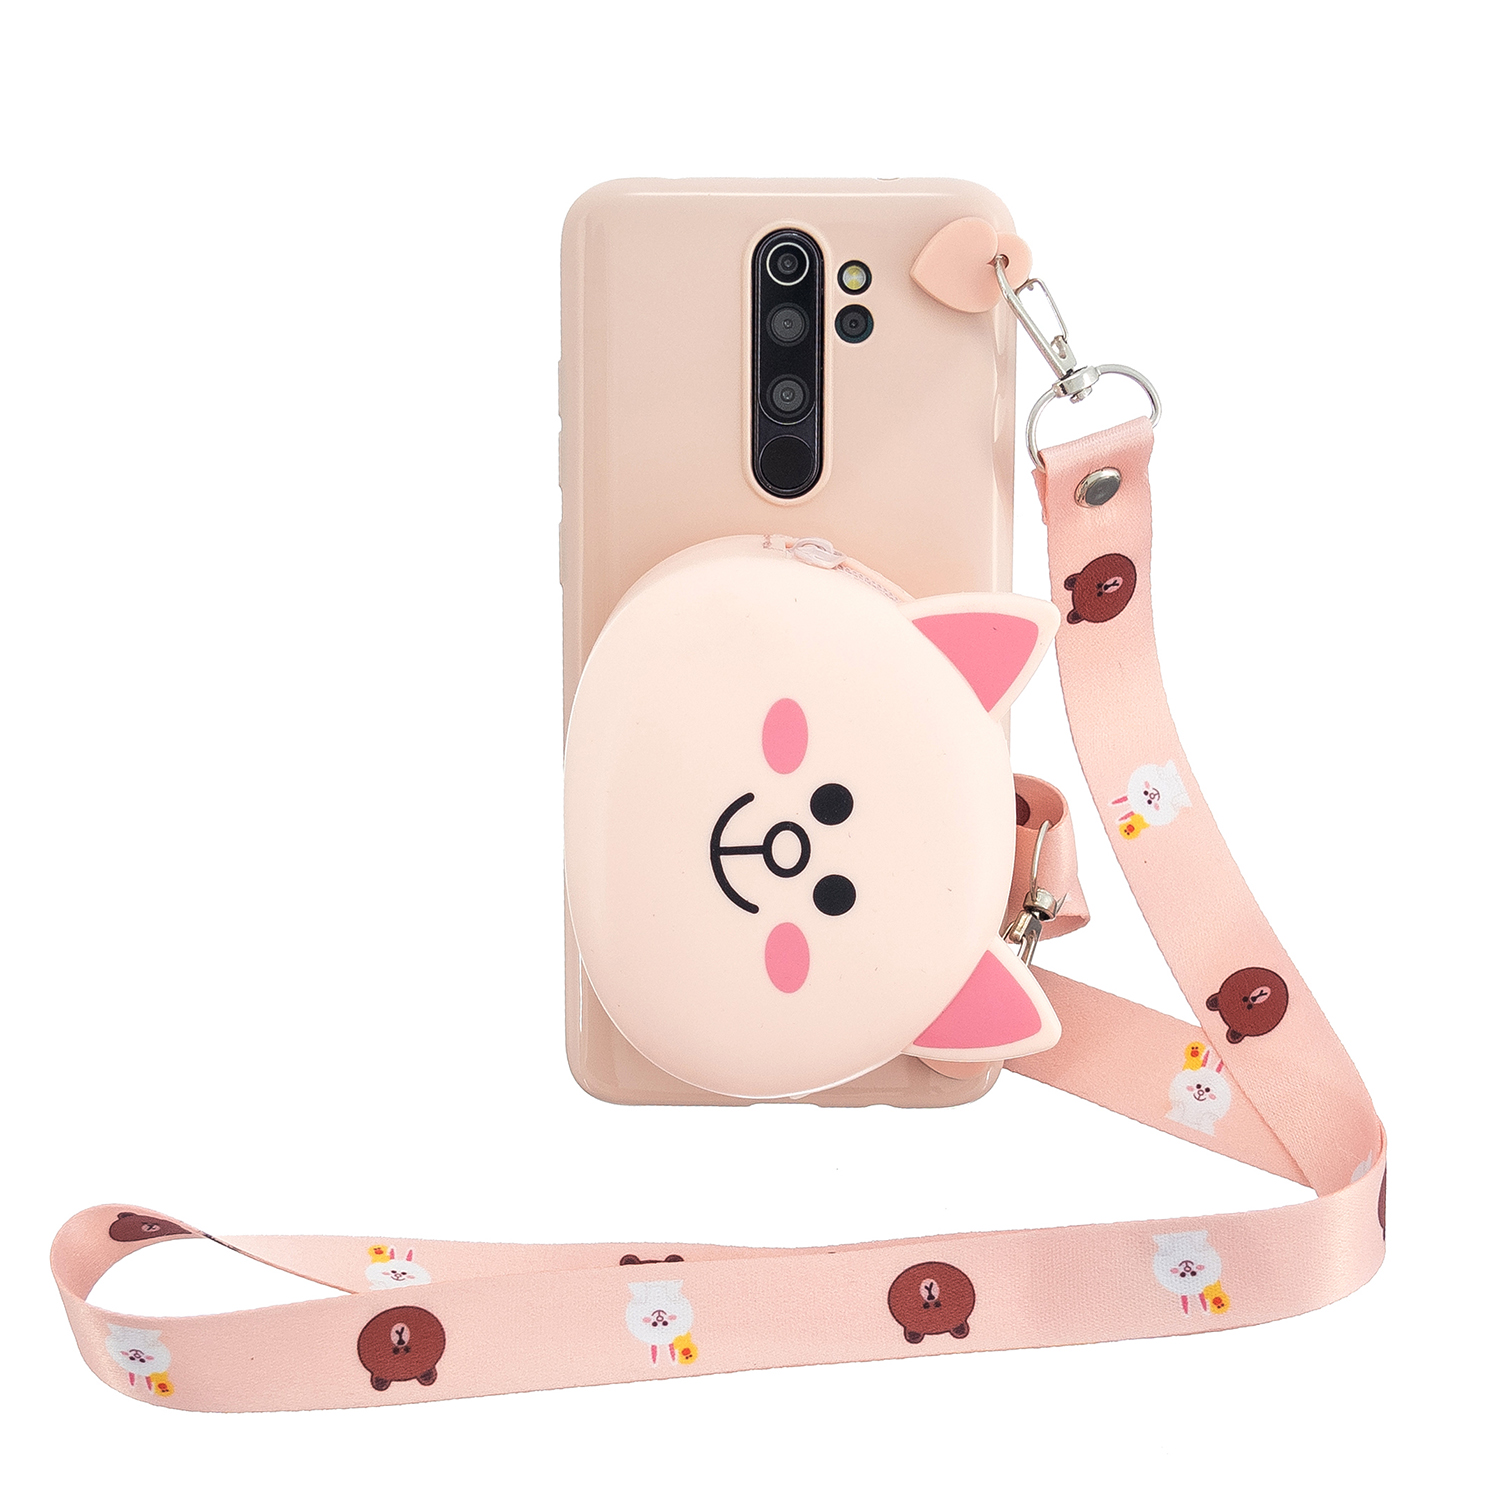 For Redmi Note 8/8T/8 Pro Cellphone Case Mobile Phone Shell Shockproof TPU Cover with Cartoon Cat Pig Panda Coin Purse Lovely Shoulder Starp  Pink